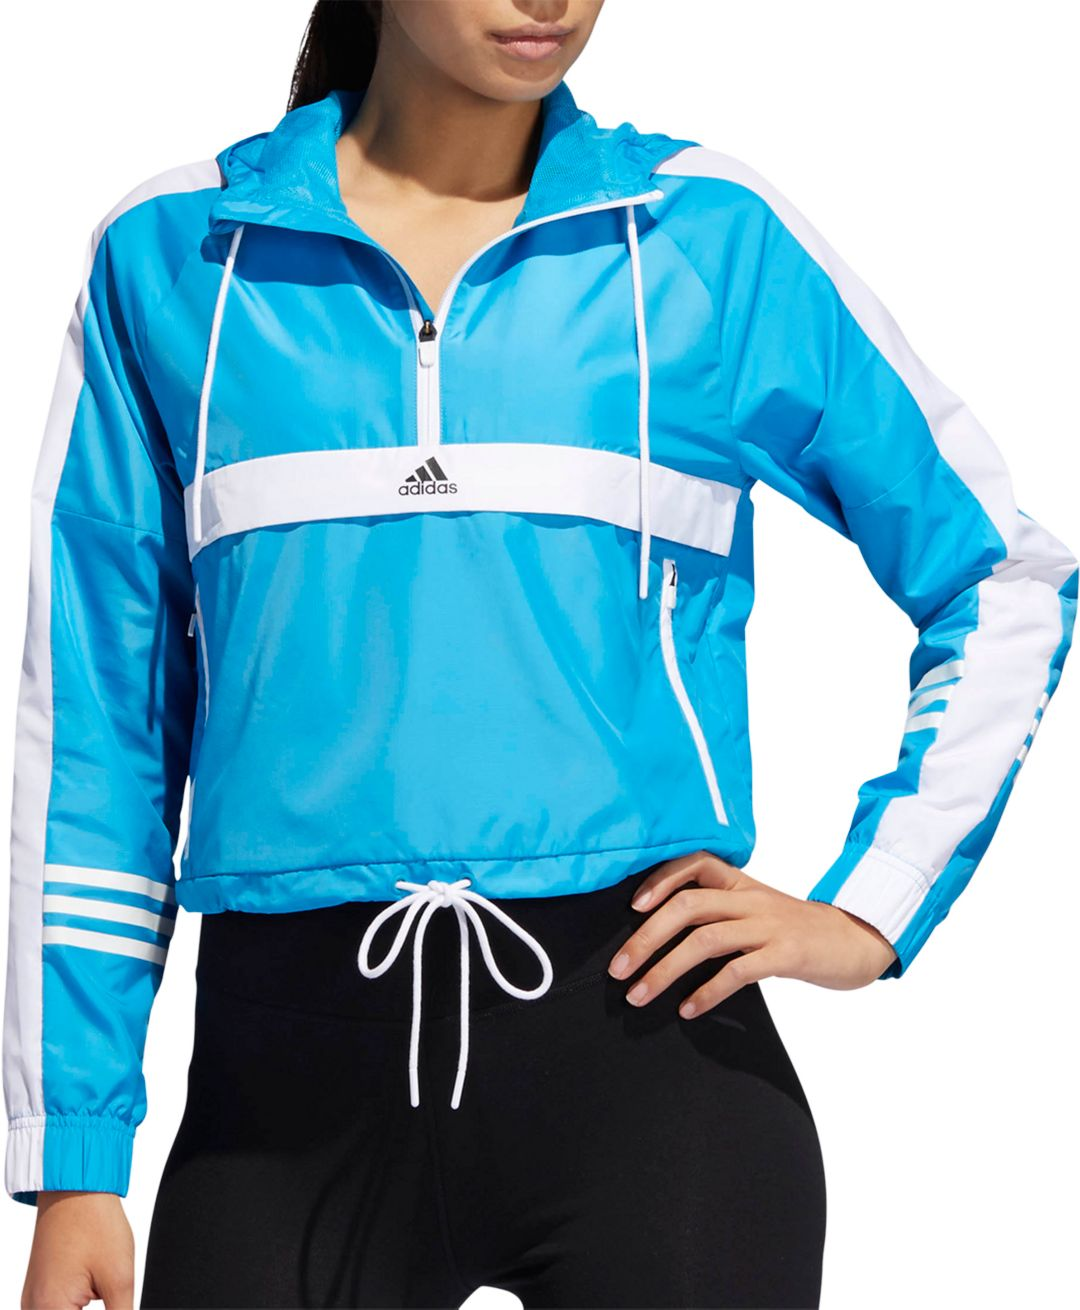 ea51959fc53bb adidas Women's ID Wind Half Zip Jacket | DICK'S Sporting Goods